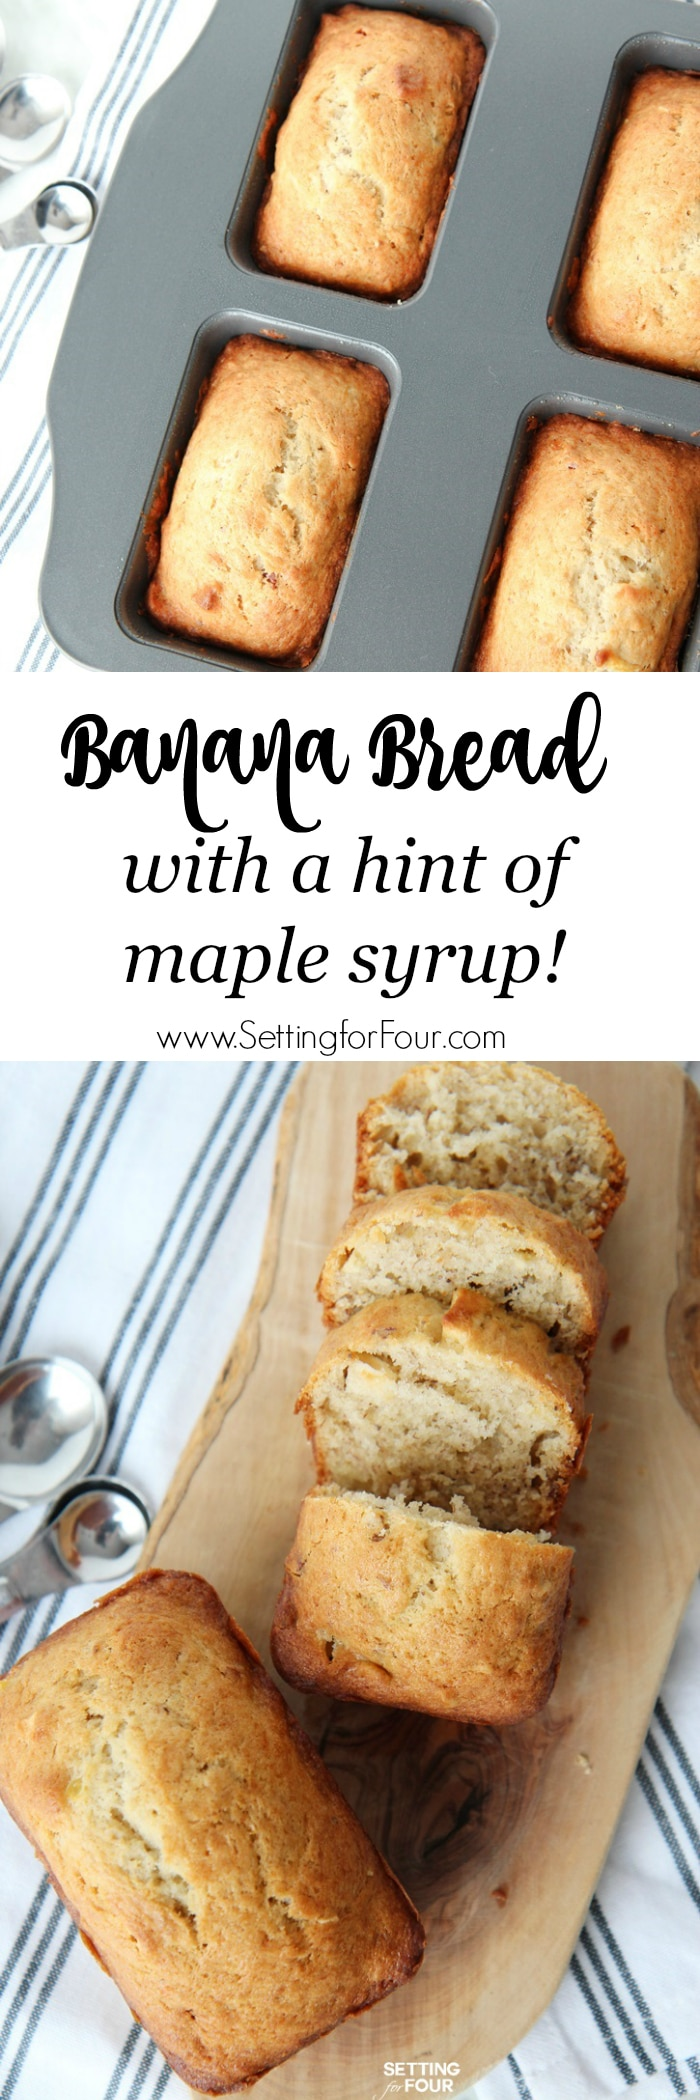 banana-bread-with-maple-syrup